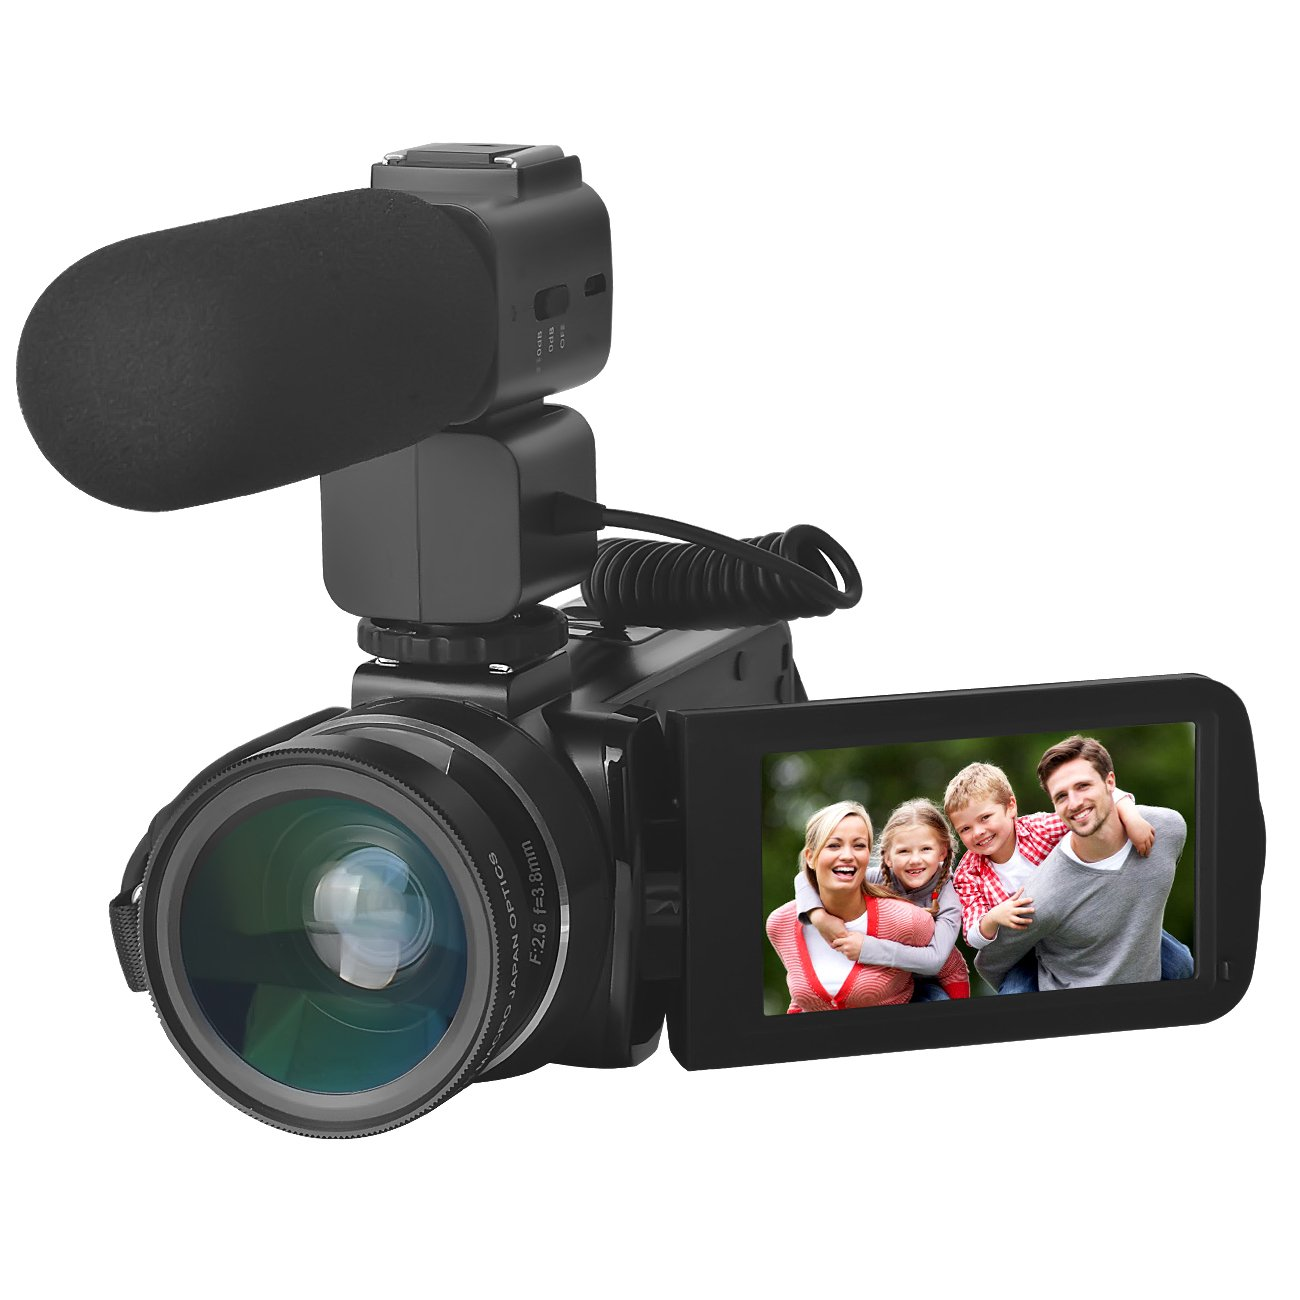 Video Camera, Sicanal Full HD 1080P 30FPS Portable Digital HDV Wifi Video Camcorder DVR with External Microphone and Wide Angle Lens (HDV-Z20)